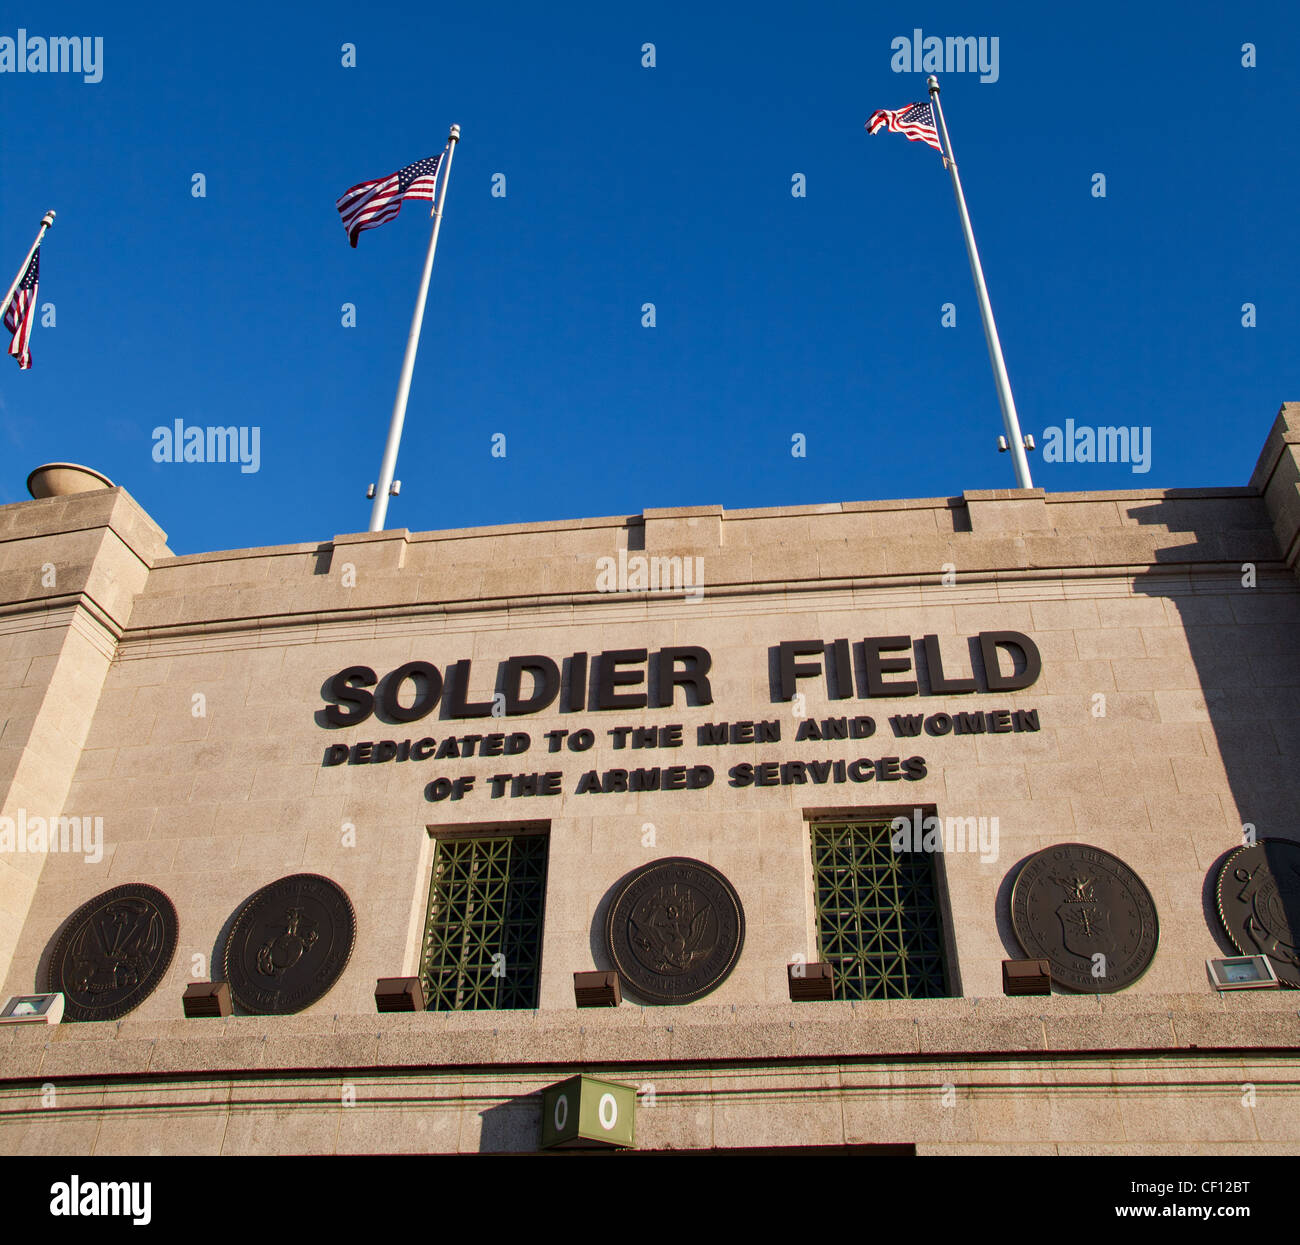 Home Of The Chicago Bears Stock Photos   Home Of The Chicago Bears ... b4d7267de